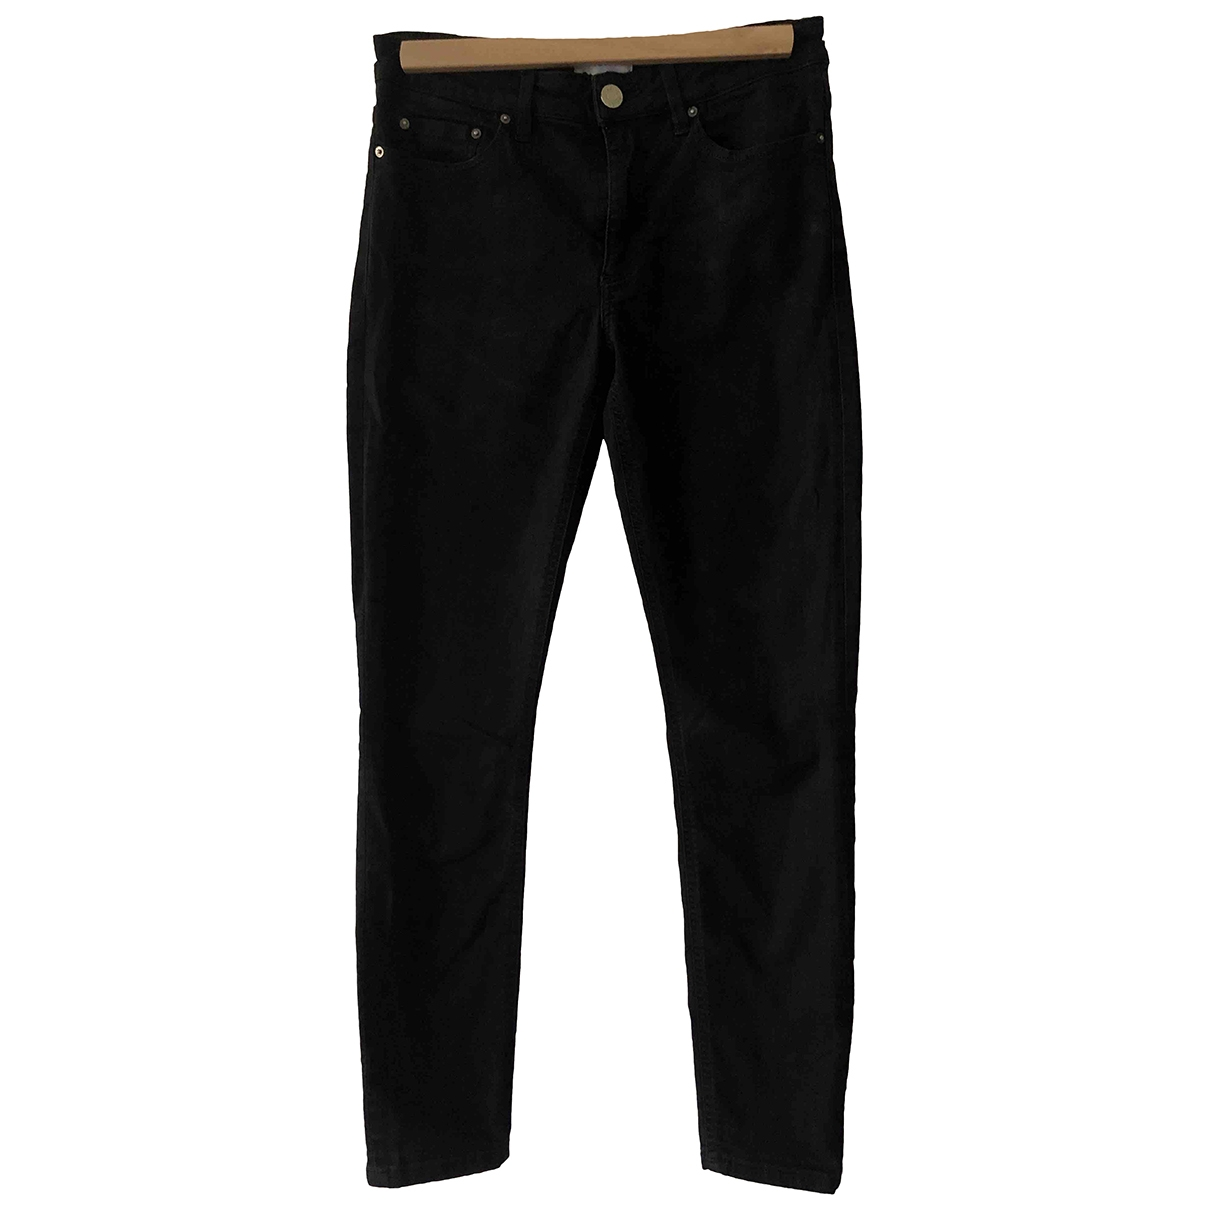 Acne Studios Skin 5 Black Cotton - elasthane Jeans for Women 36 FR